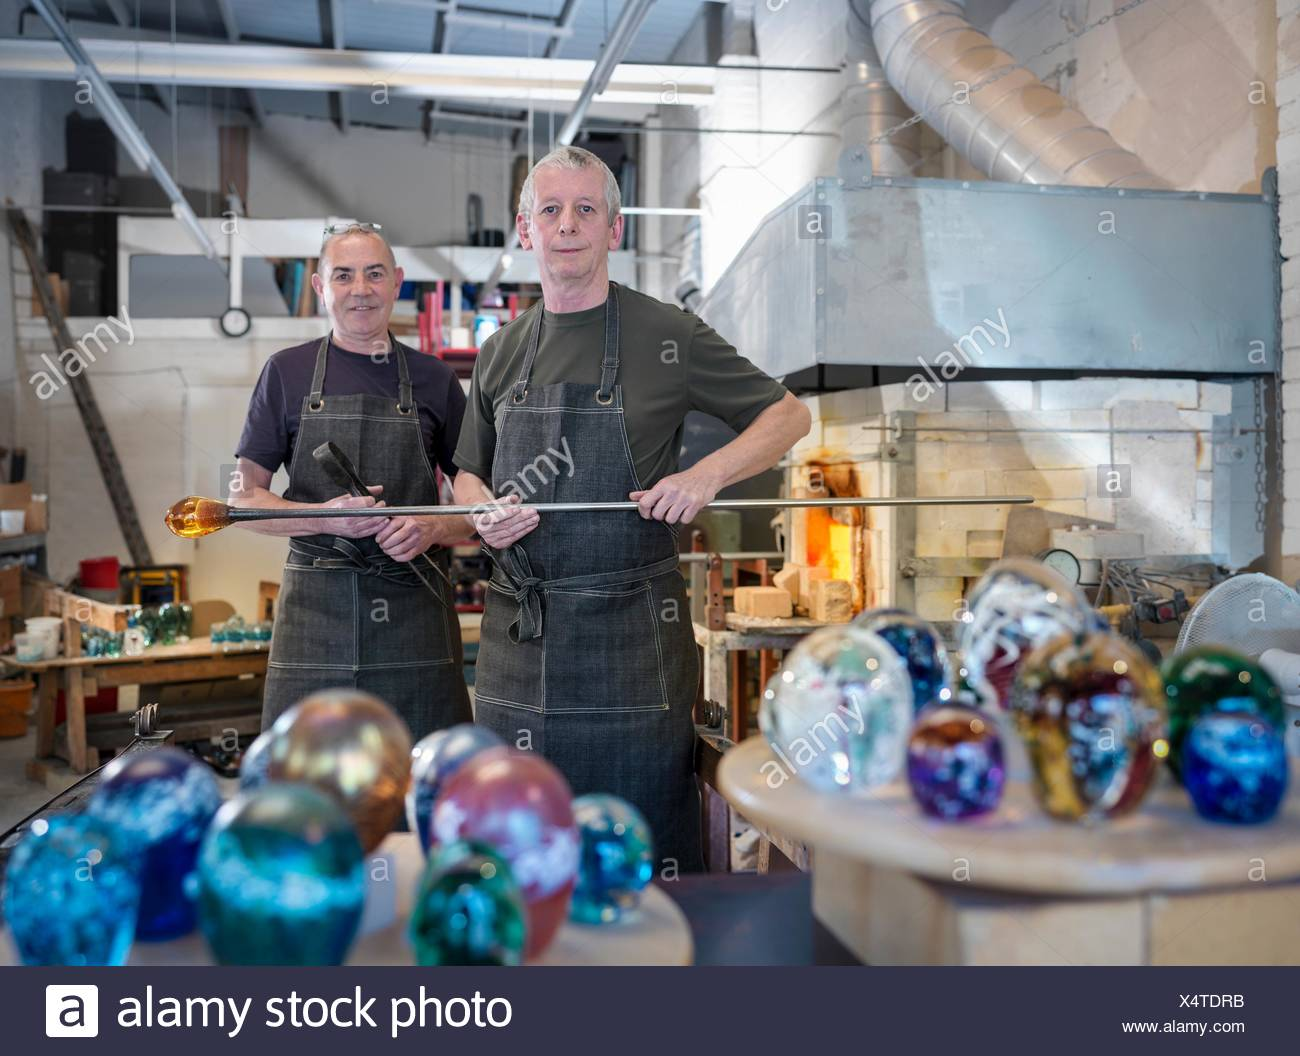 Artisan glassblowers in workshop with furnace and finished glassware - Stock Image